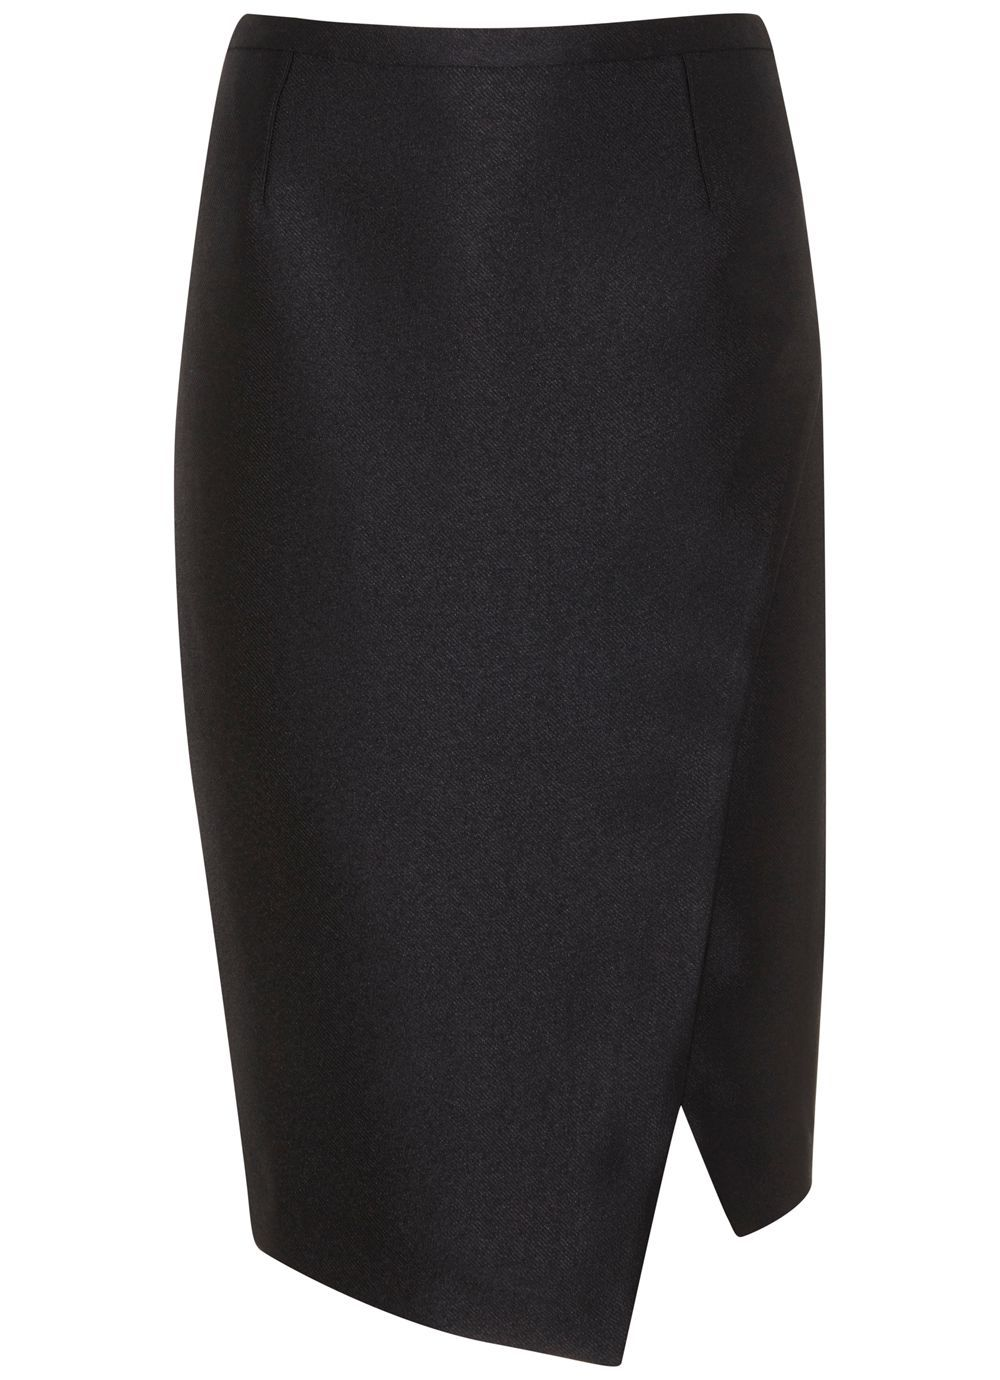 Black Metallic Pencil Skirt, Black - pattern: plain; style: pencil; fit: body skimming; waist: mid/regular rise; predominant colour: black; occasions: evening; length: just above the knee; fibres: leather - 100%; pattern type: fabric; texture group: suede; season: a/w 2016